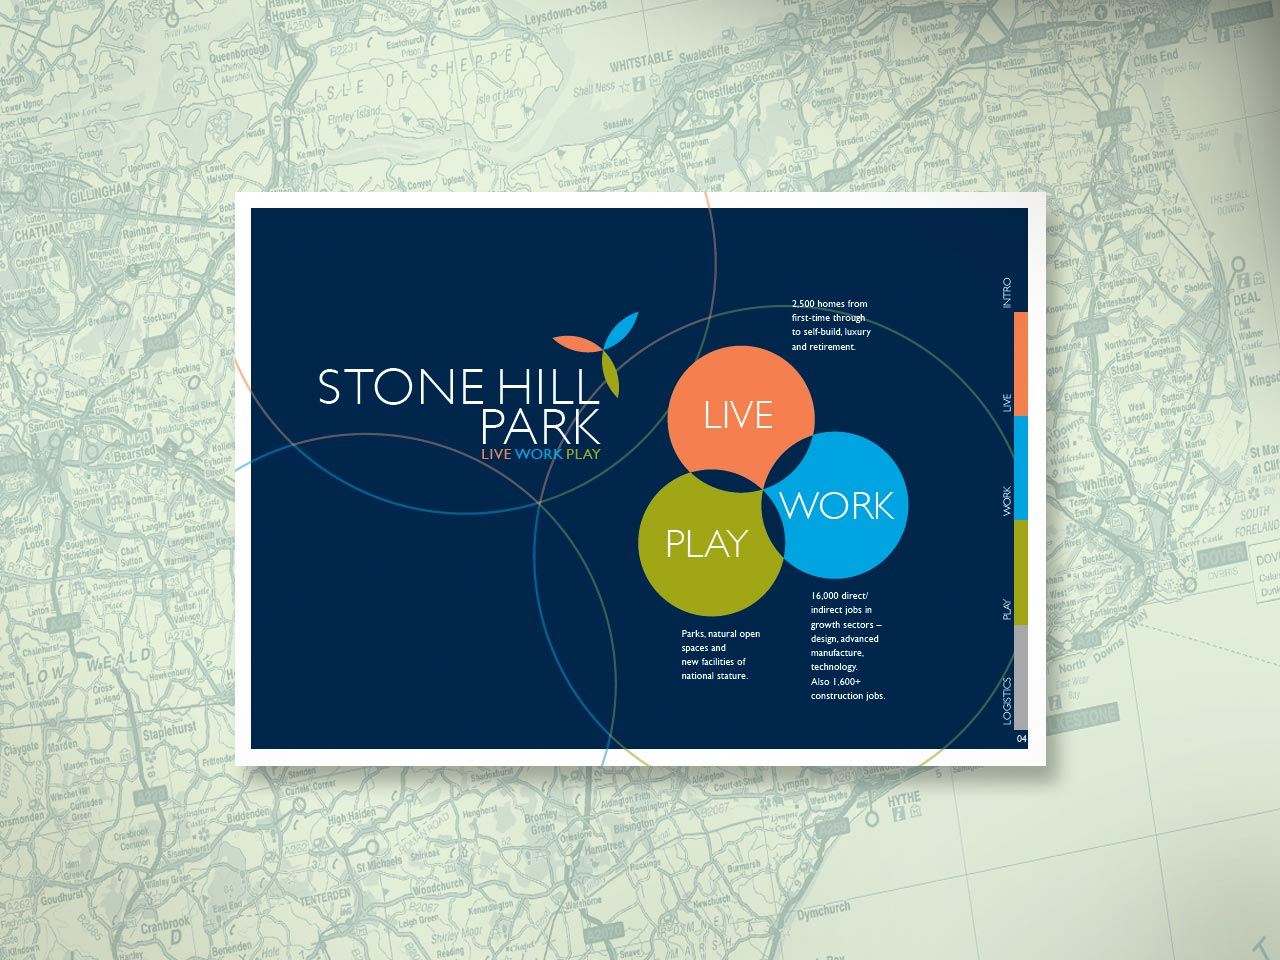 stone hill park identity and marketing project